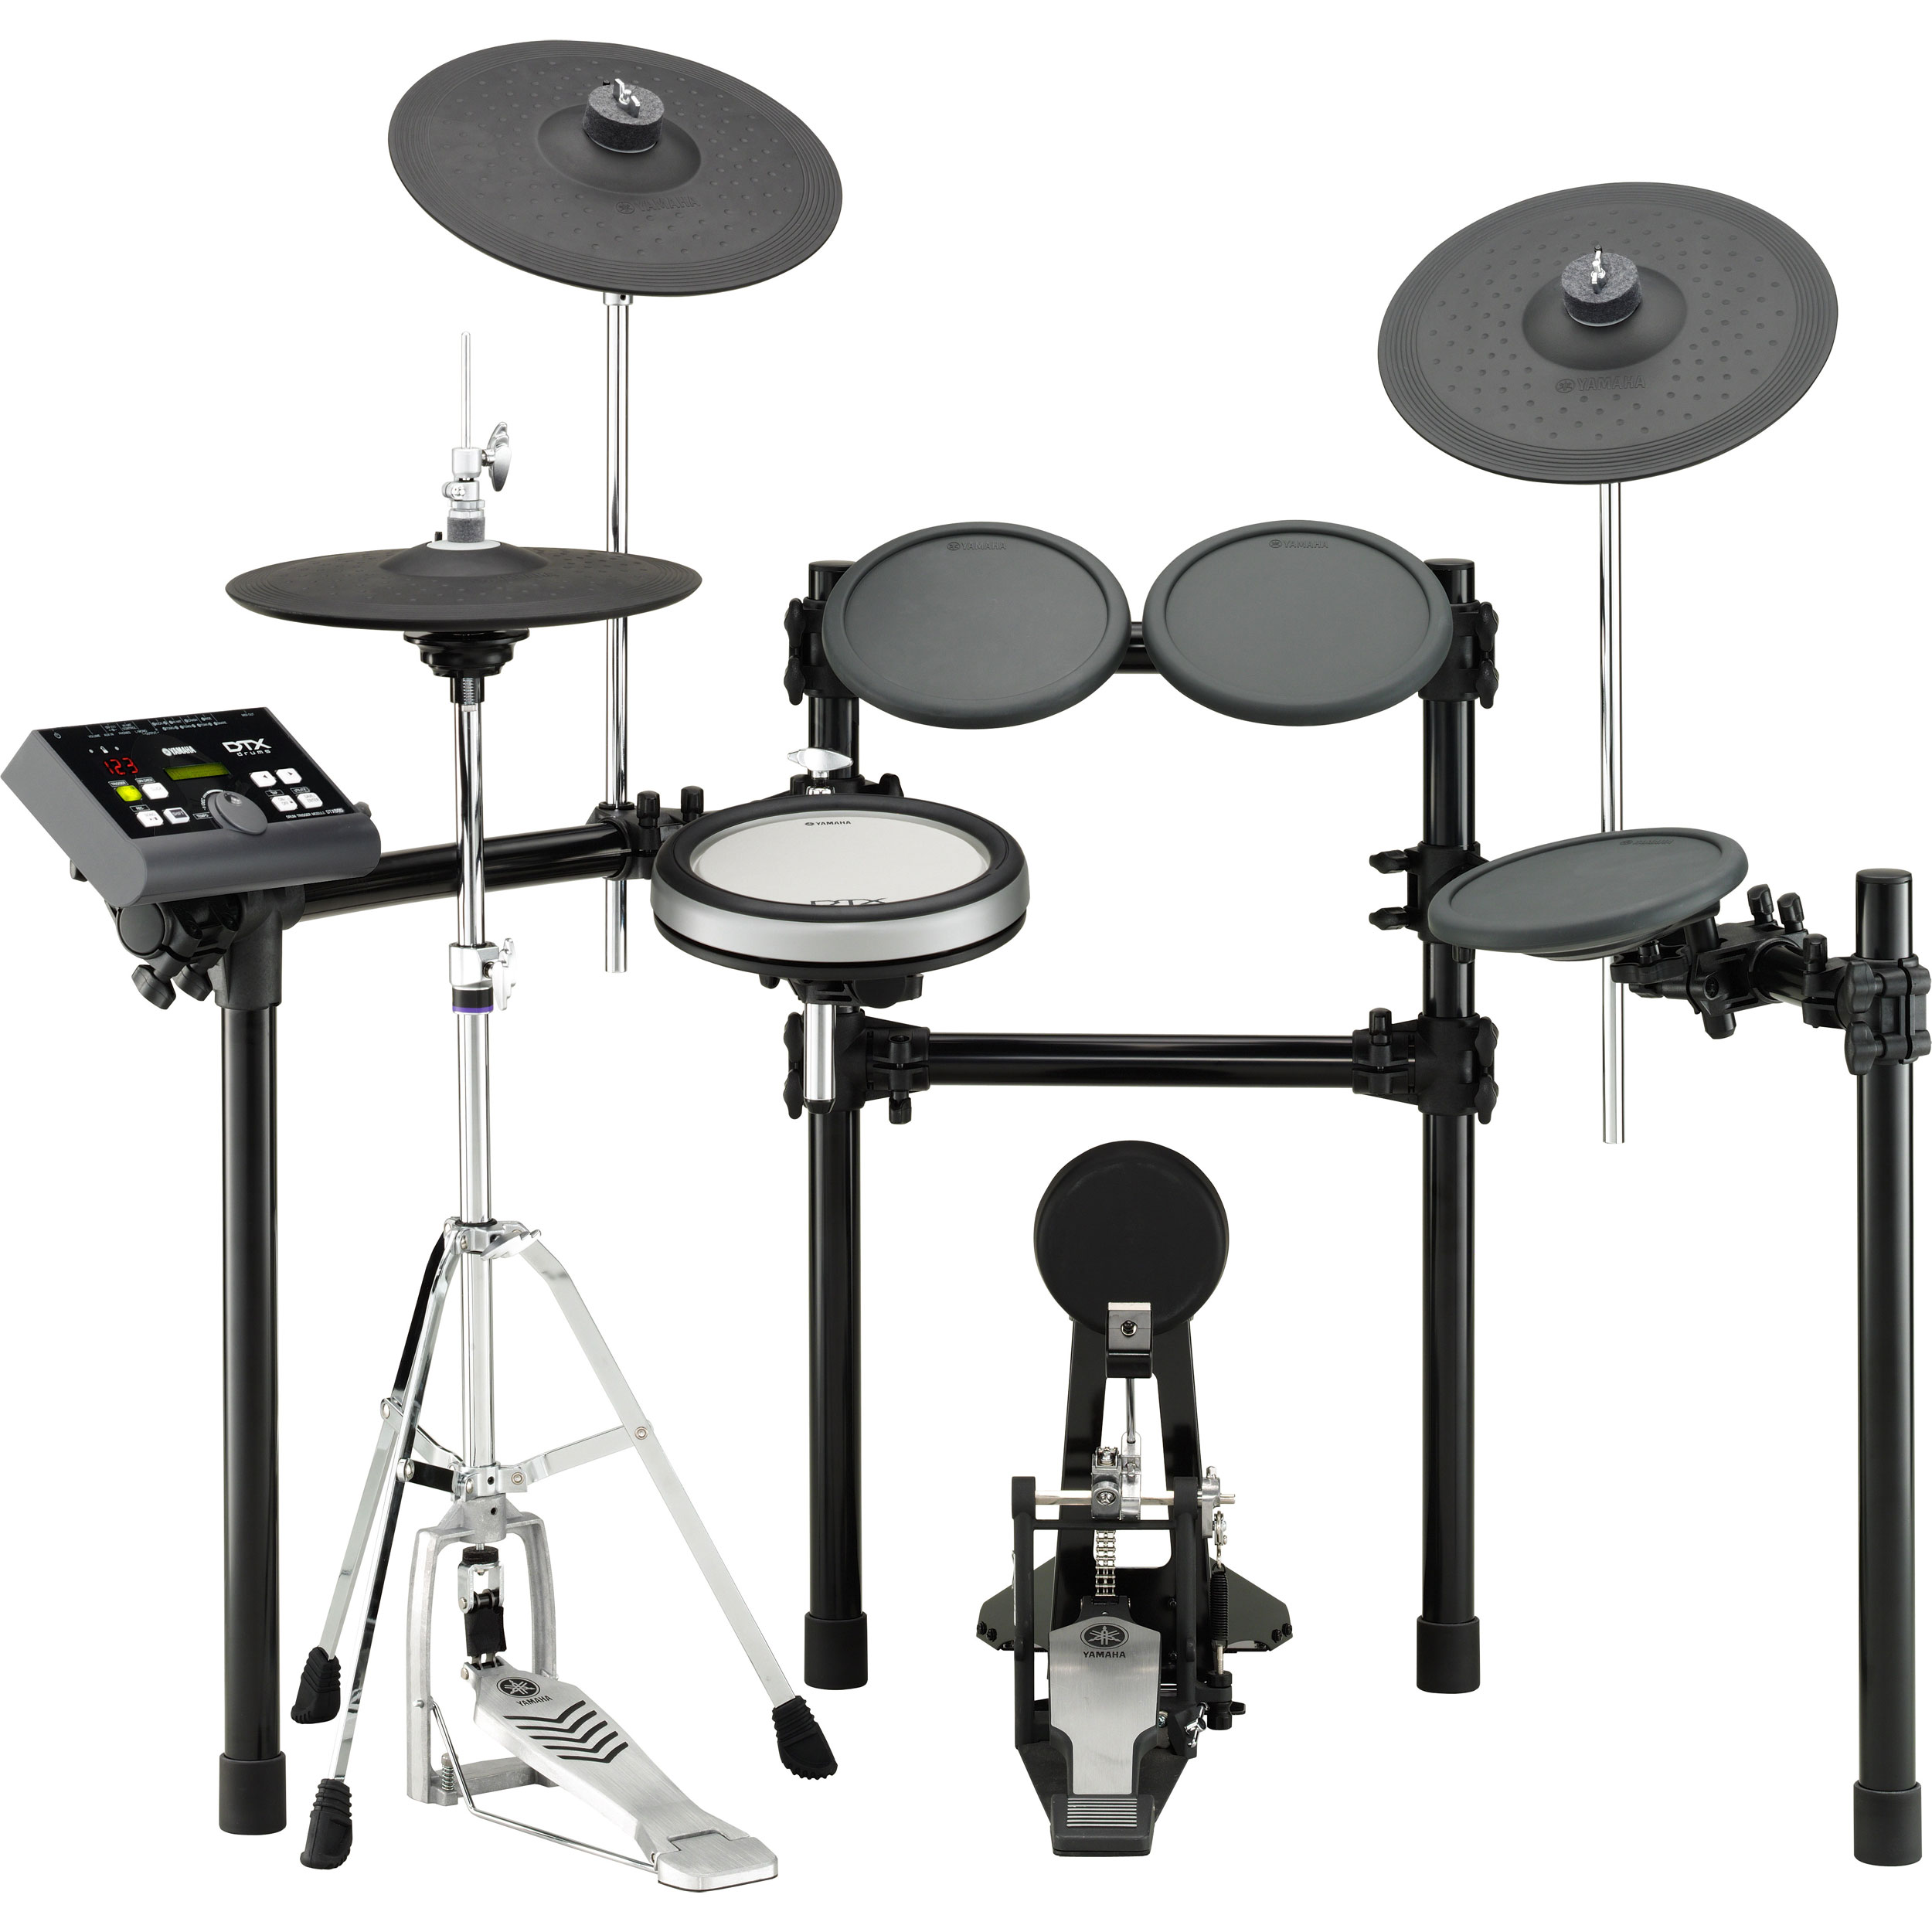 Yamaha dtx500 series electronic drum set xp80 snare pad for Yamaha electronic drum set